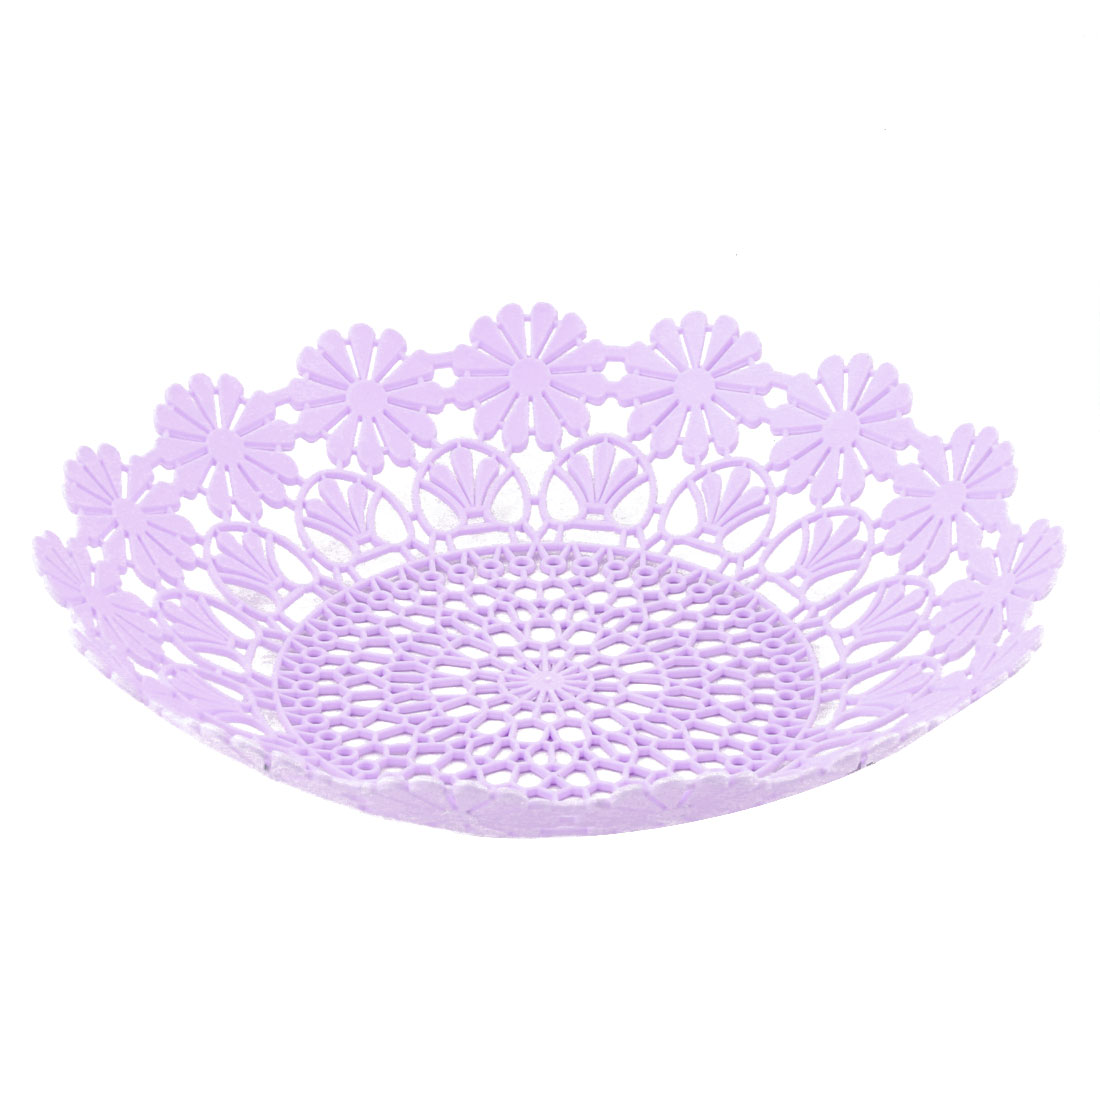 Home Kitchen Plastic Hollow Out Flower Edge Design Fruit Vegetable Basket Plate Tray Light Purple